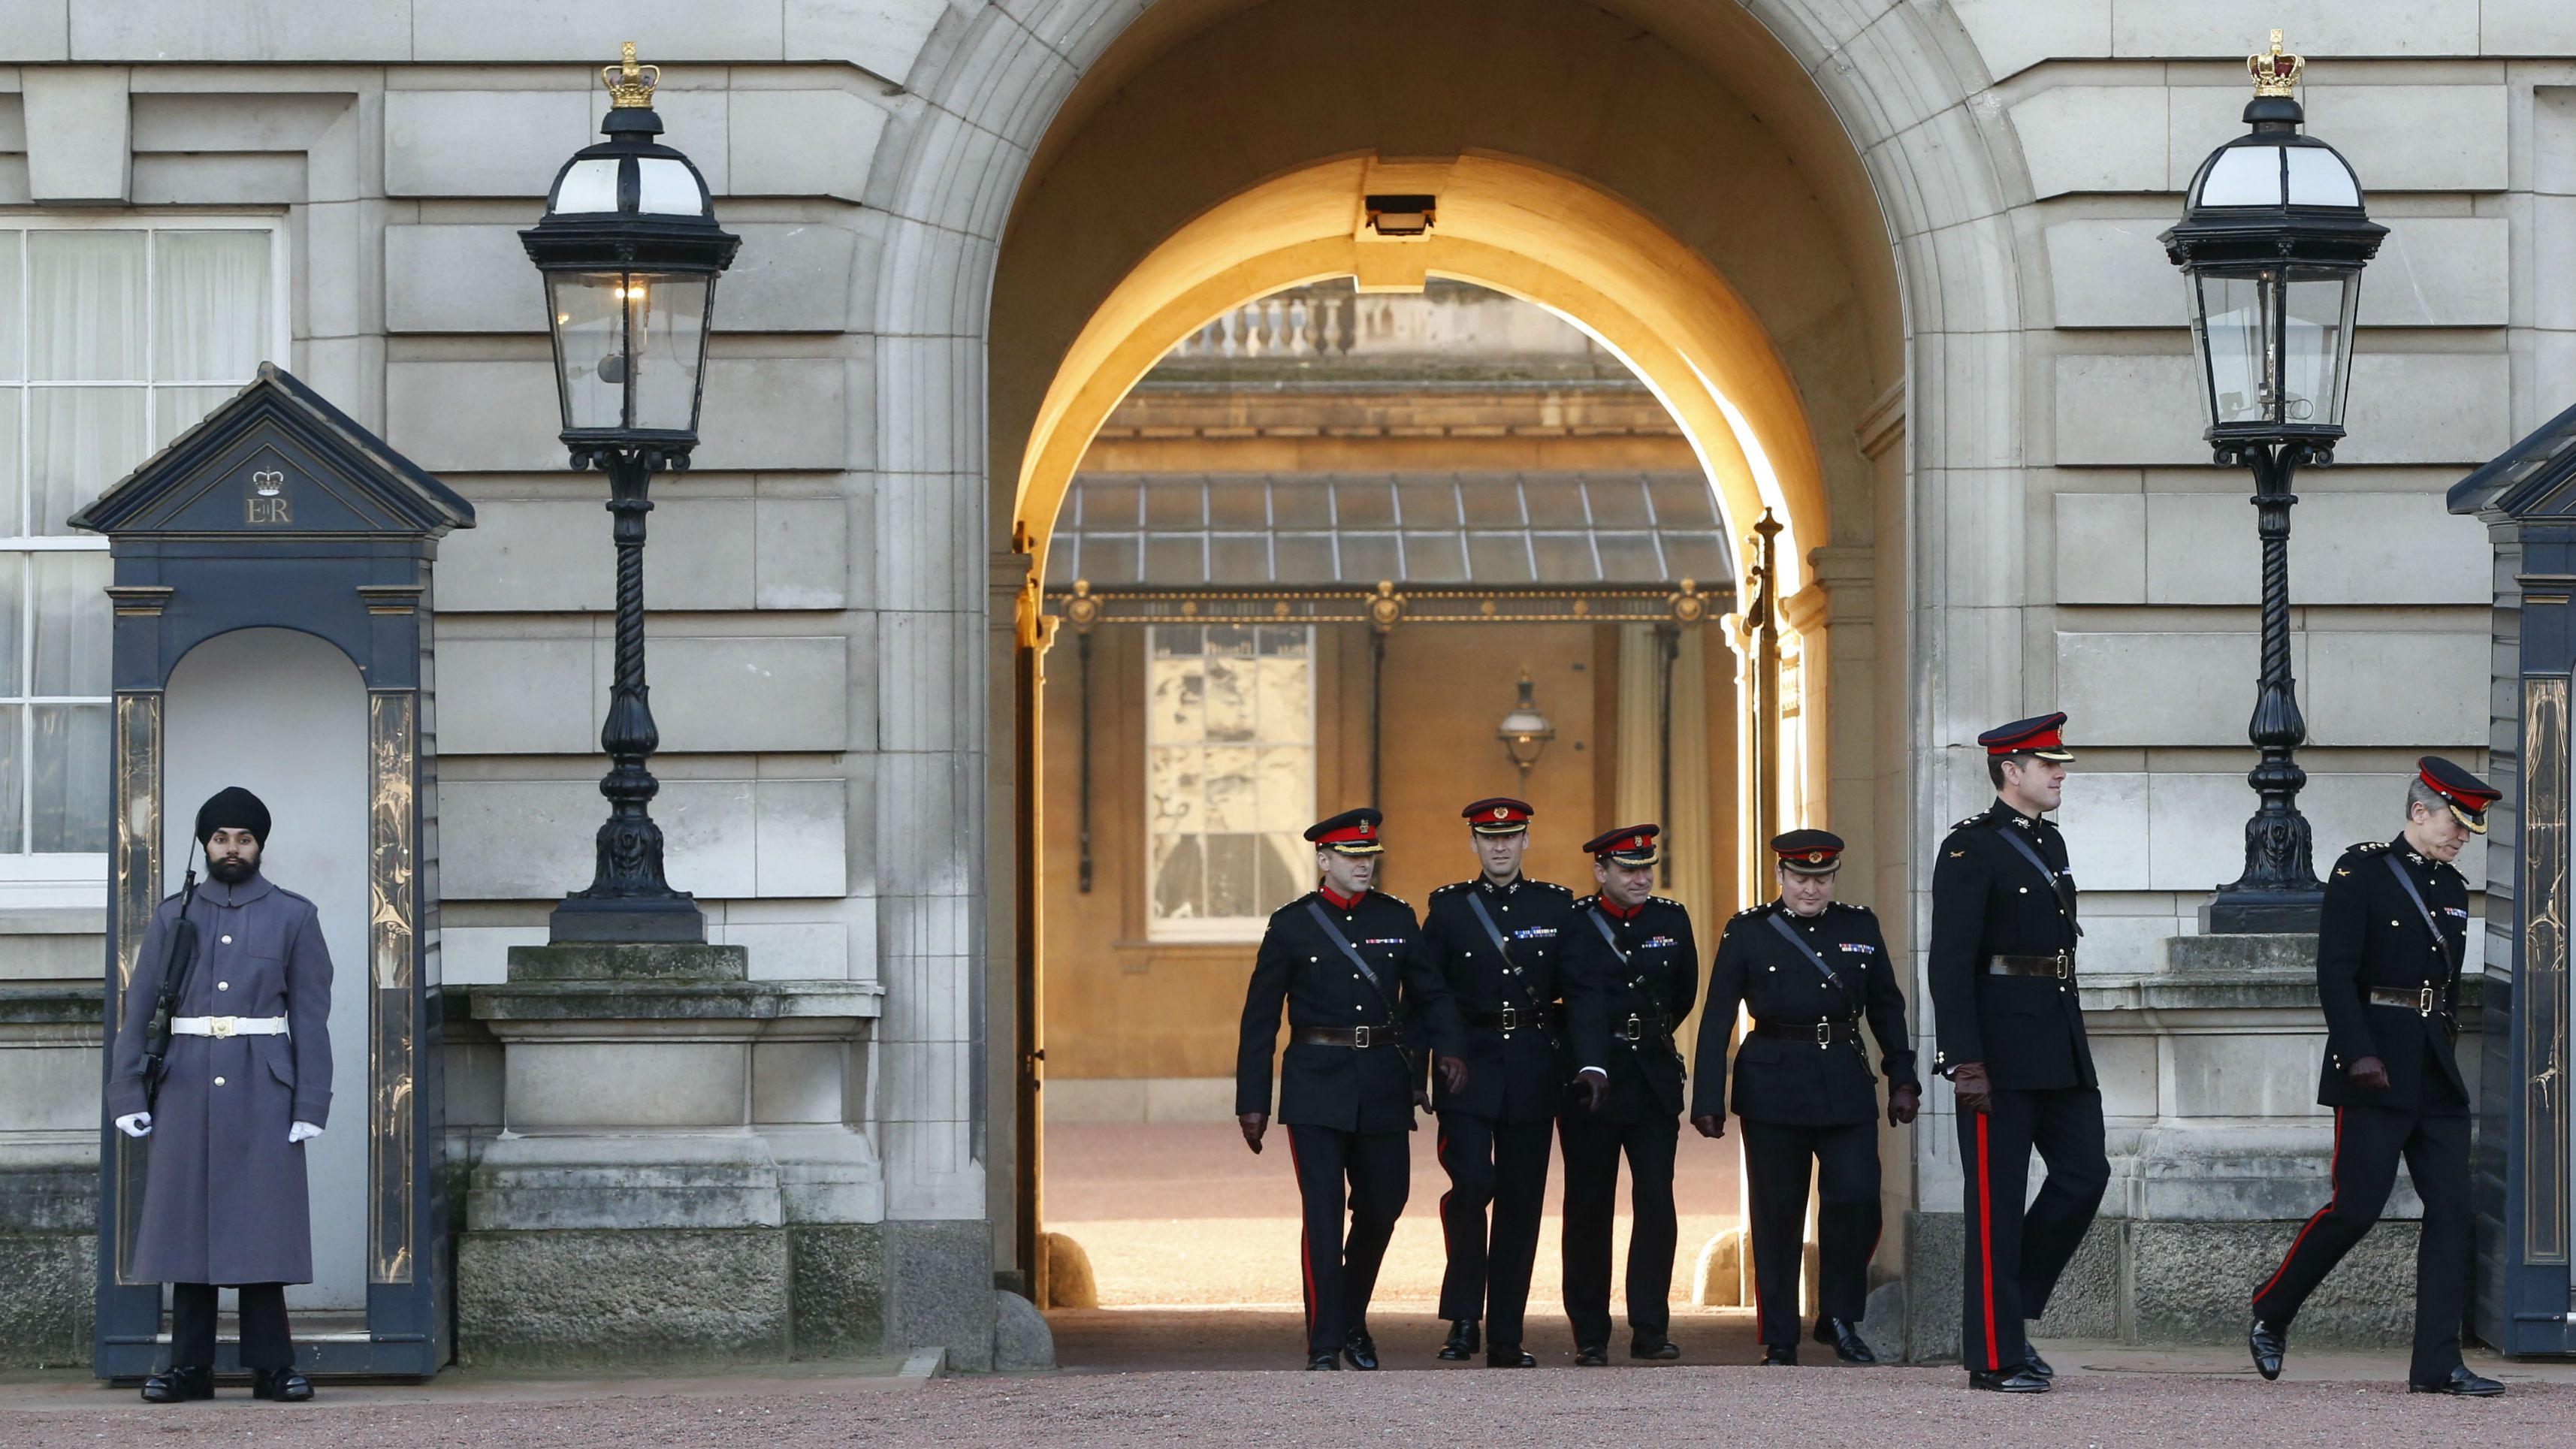 A Sikh soldier guards Buckingham Palace